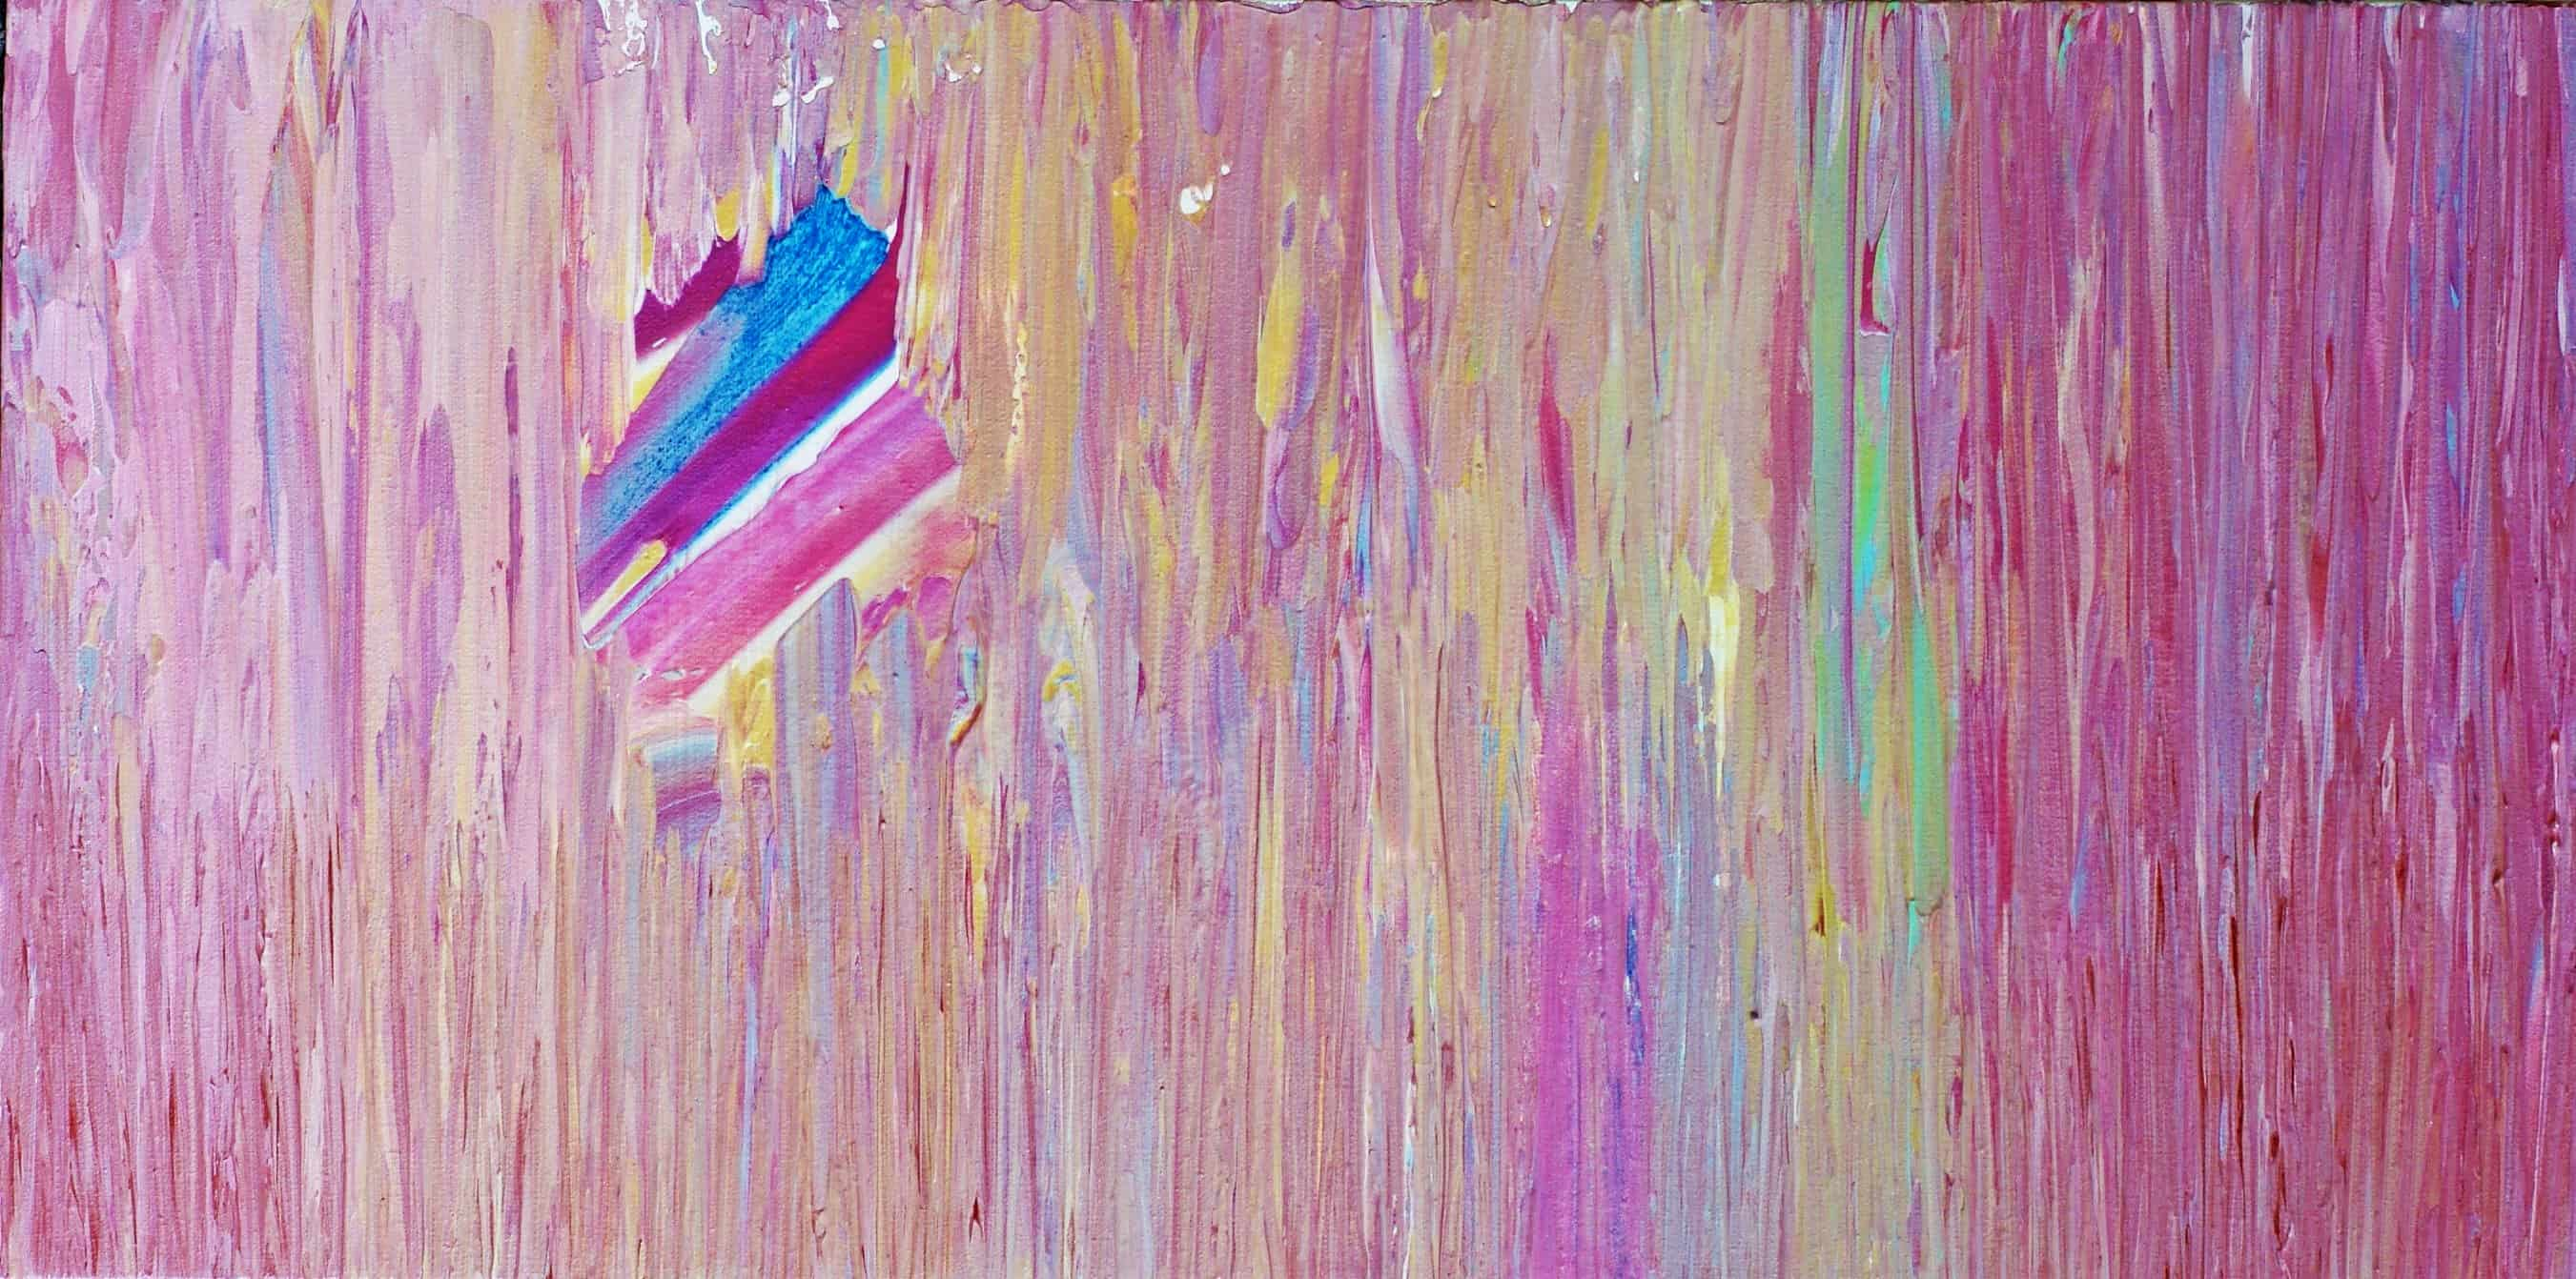 Dripping in Pink Acrylic on canvas